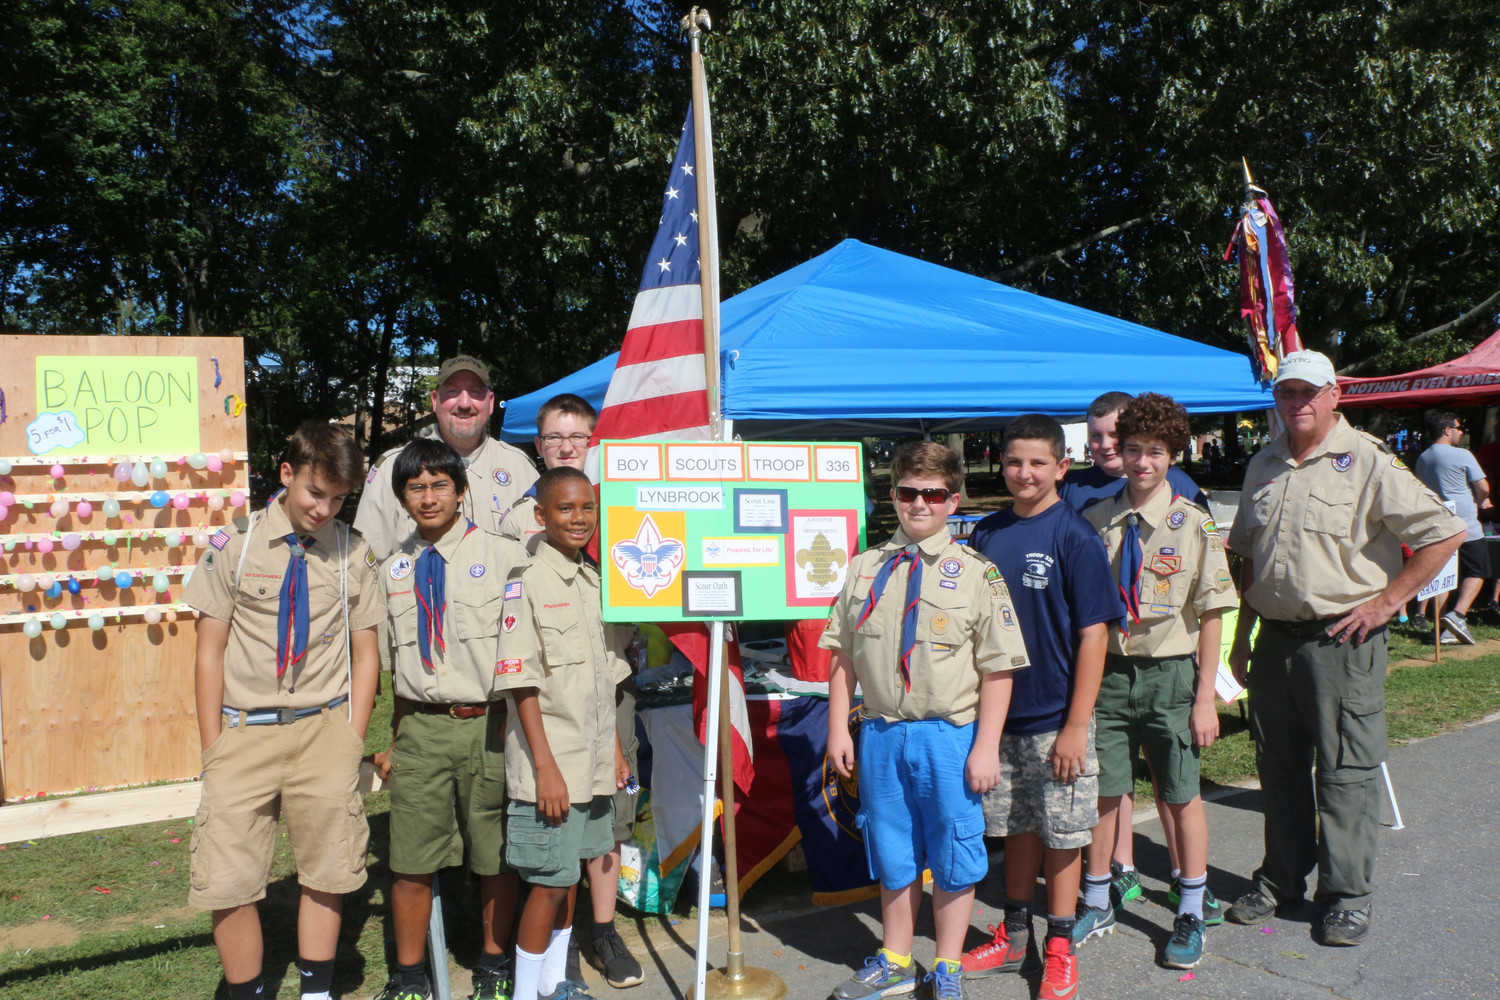 Lynbrook Cub Scouts Troop 336 members participated in a balloon pop contest with Scout Masters Dan Cullen and Mike Connolly. There are 35 members in the troop.